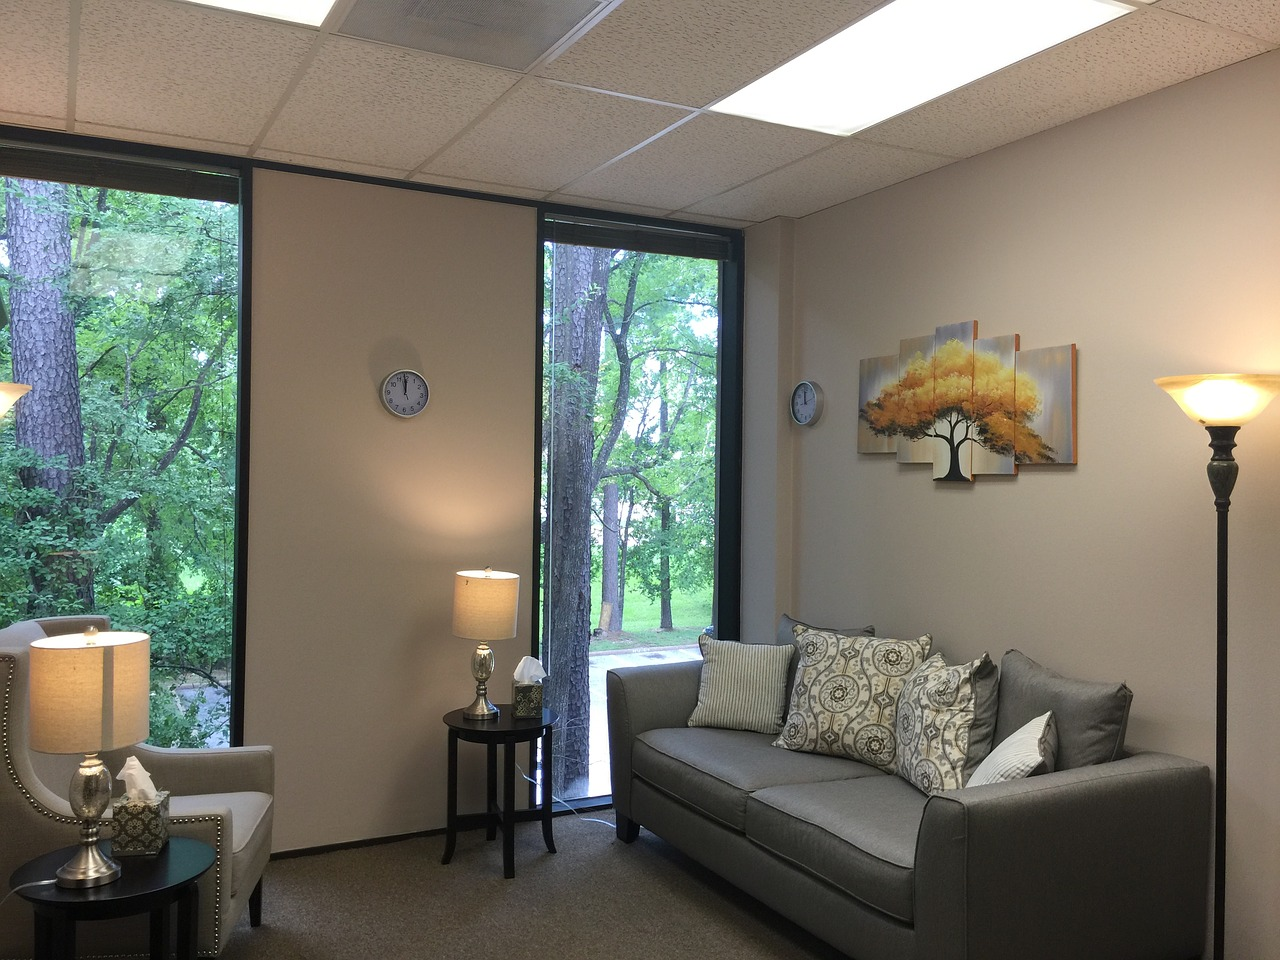 image of a therapy room